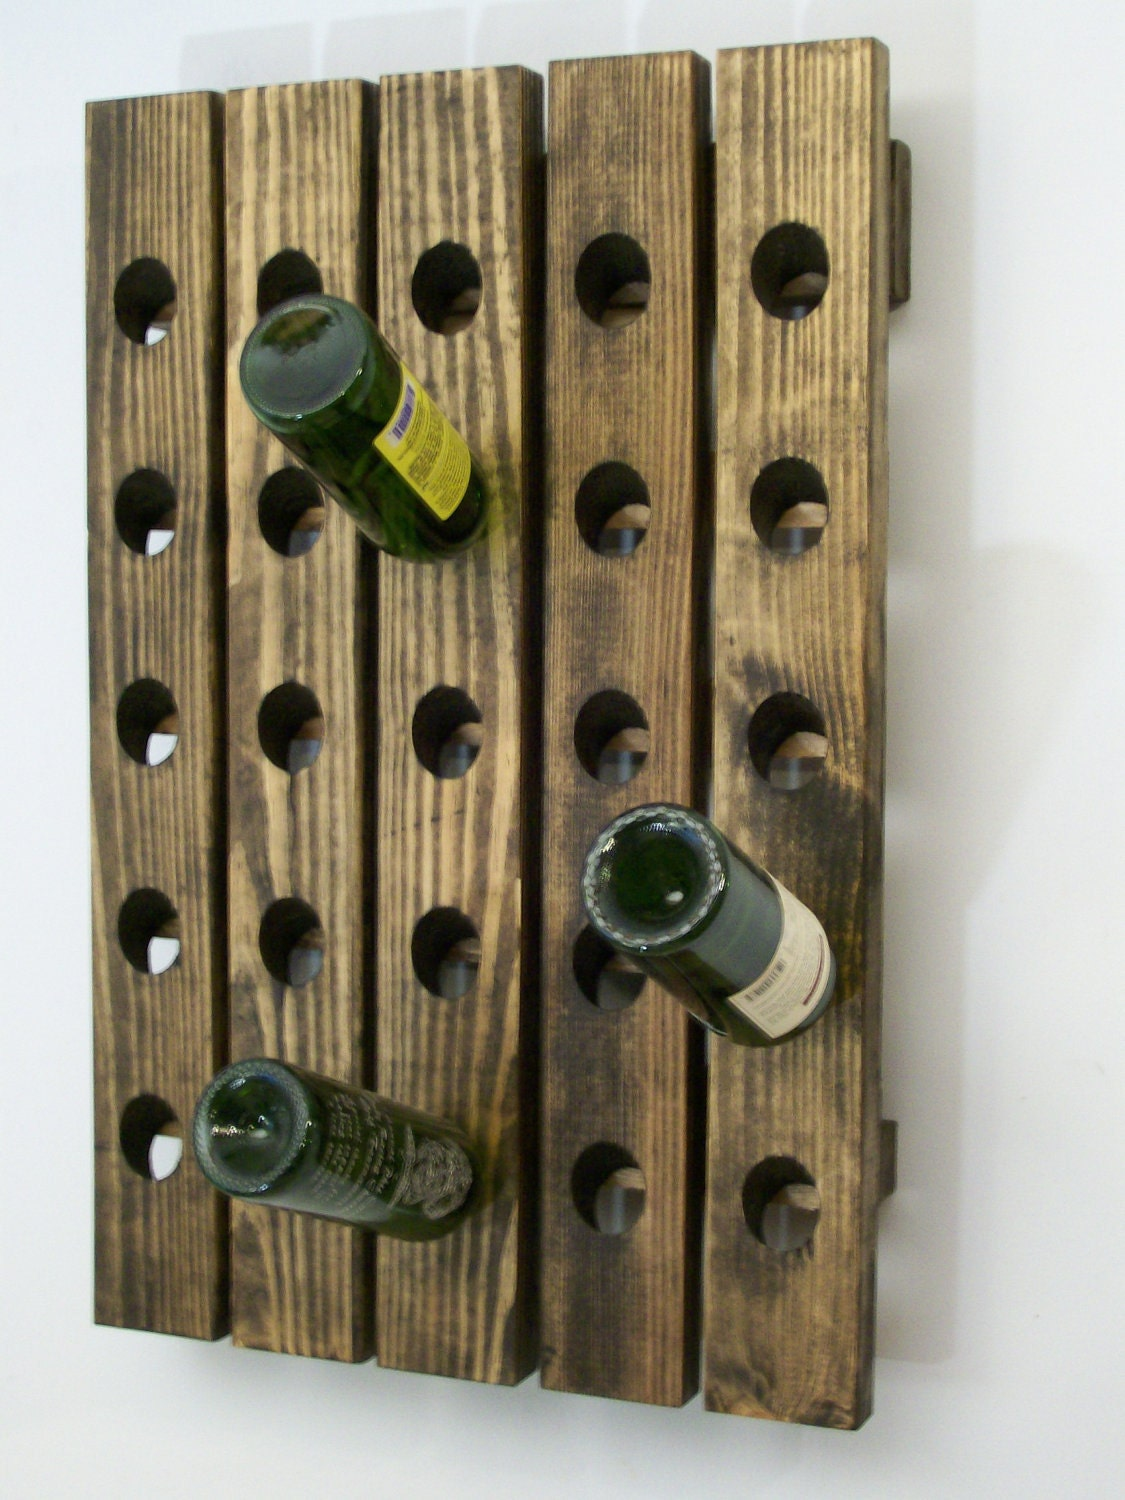 301 moved permanently Wine rack designs wood